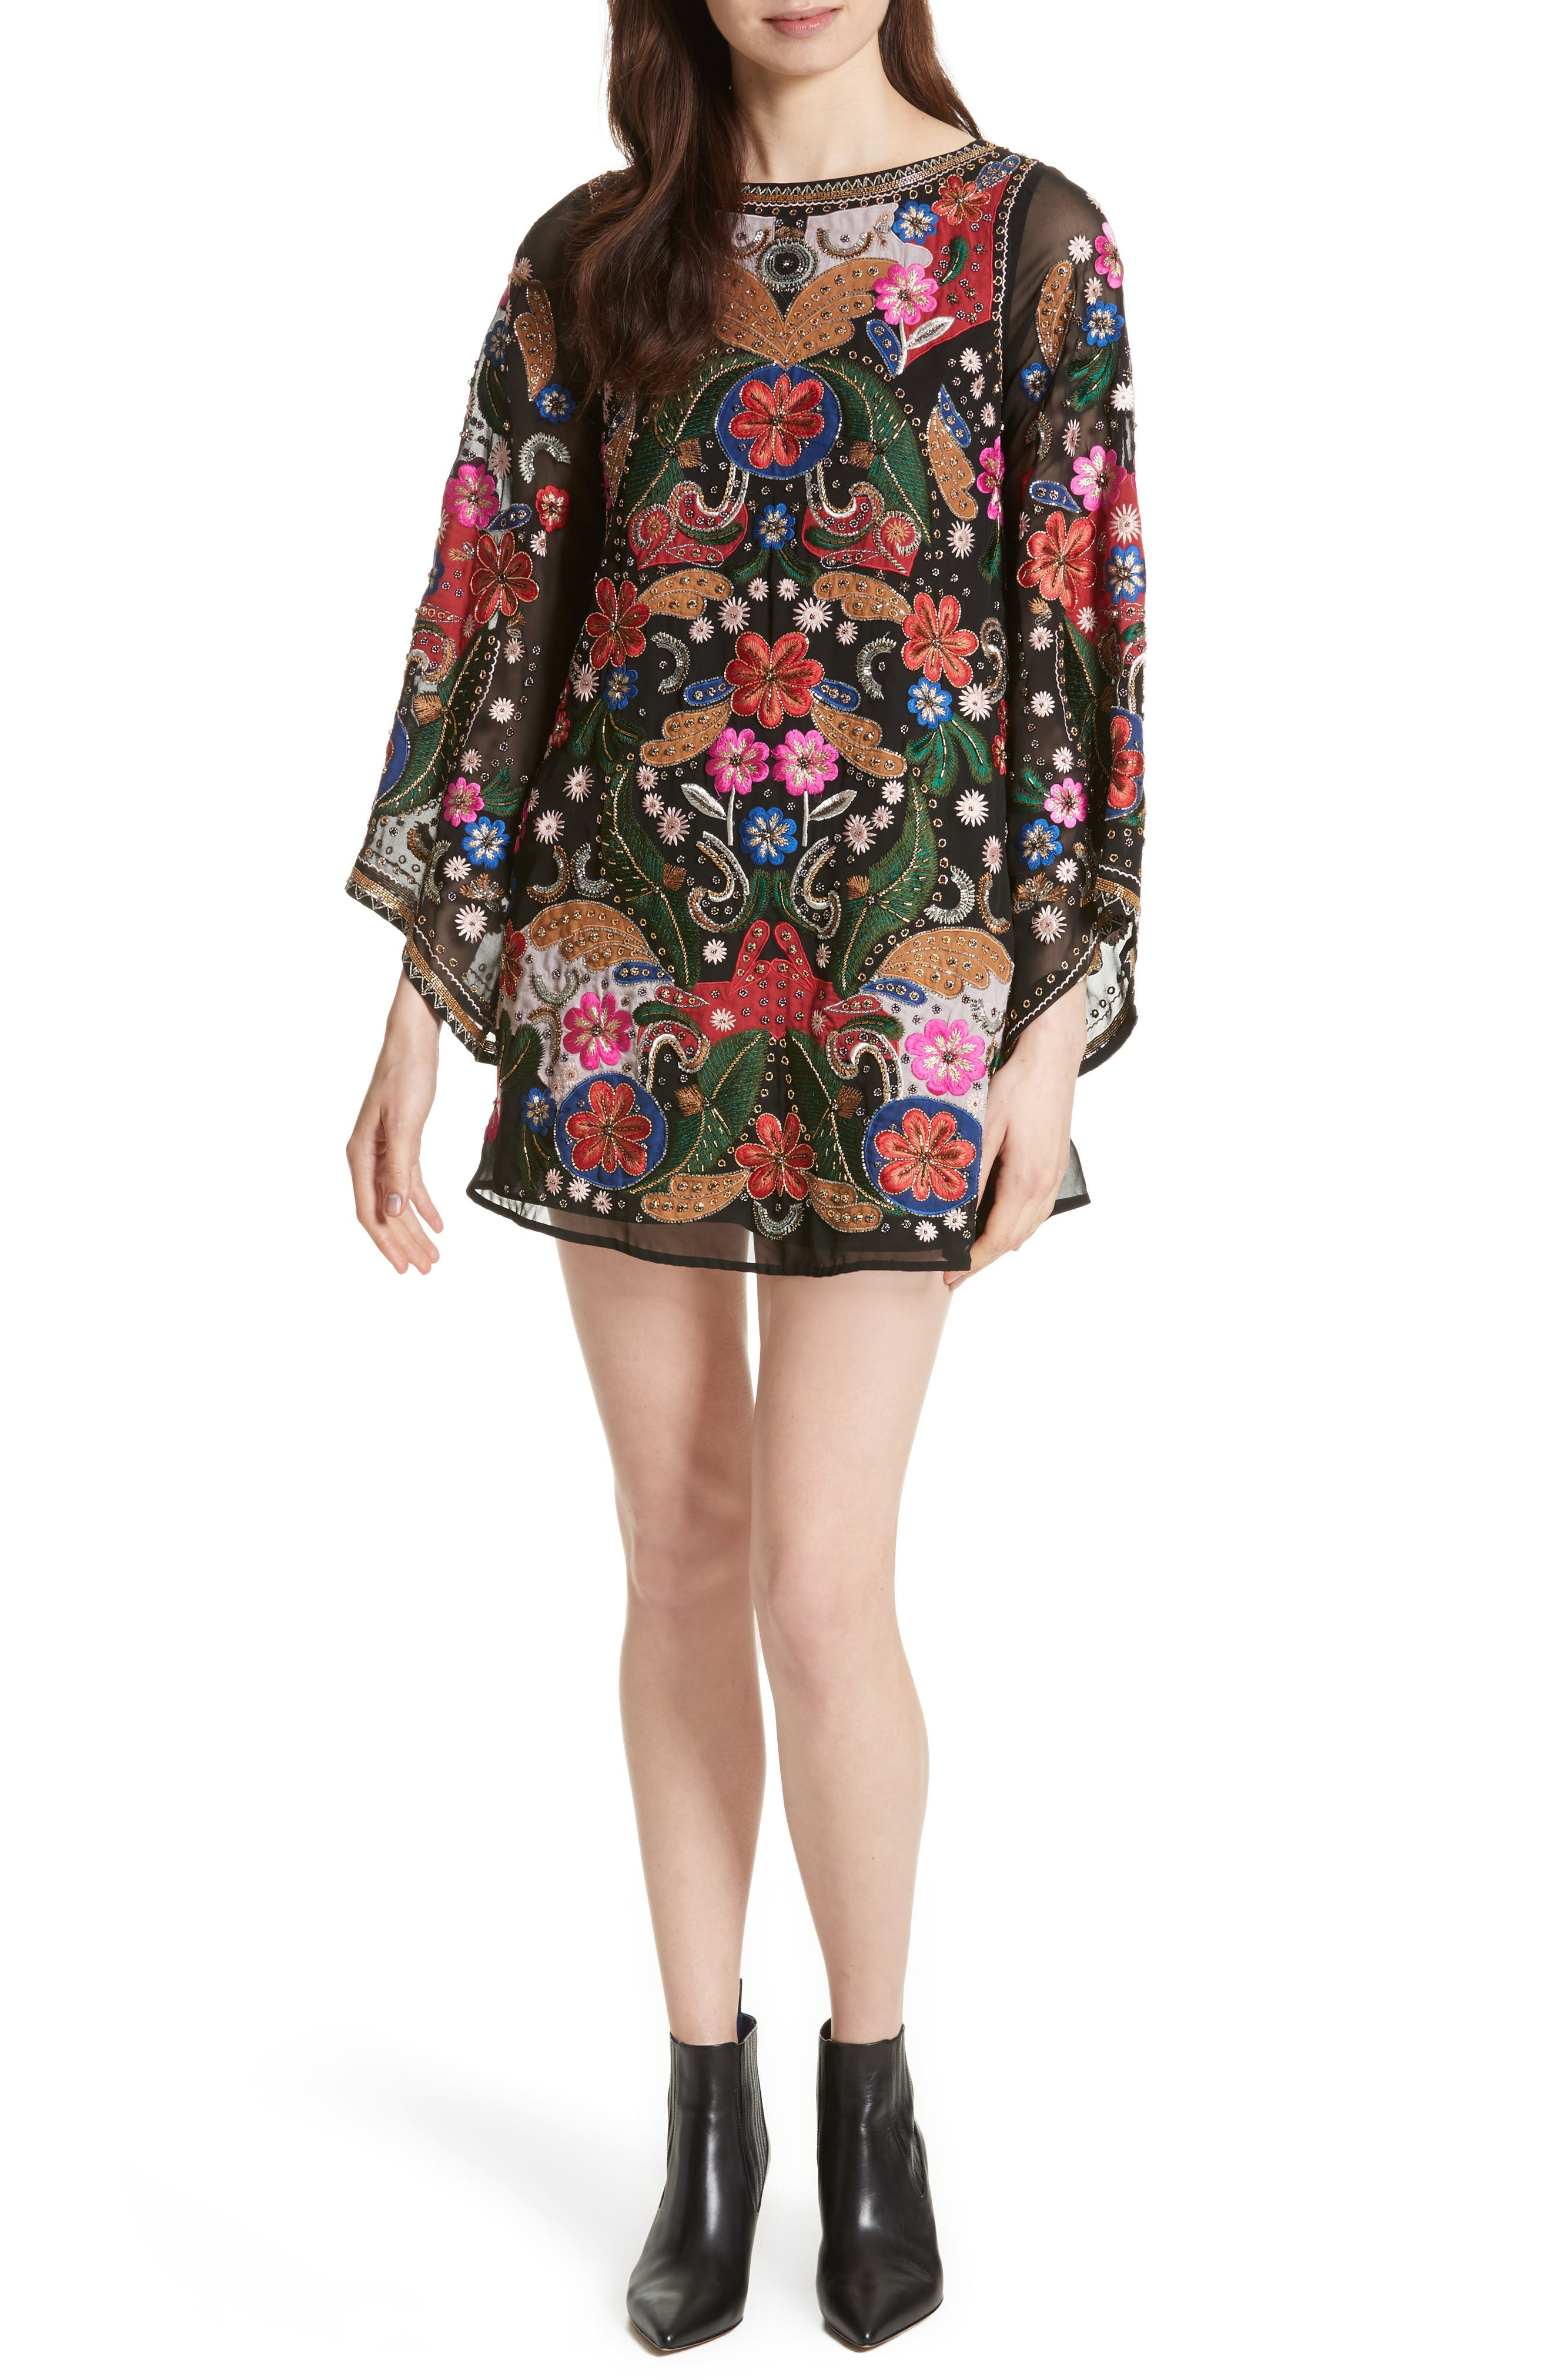 Eleonora Bell Sleeve Floral Embellished Dress,                             Main thumbnail 1, color,                             Black/ Multi